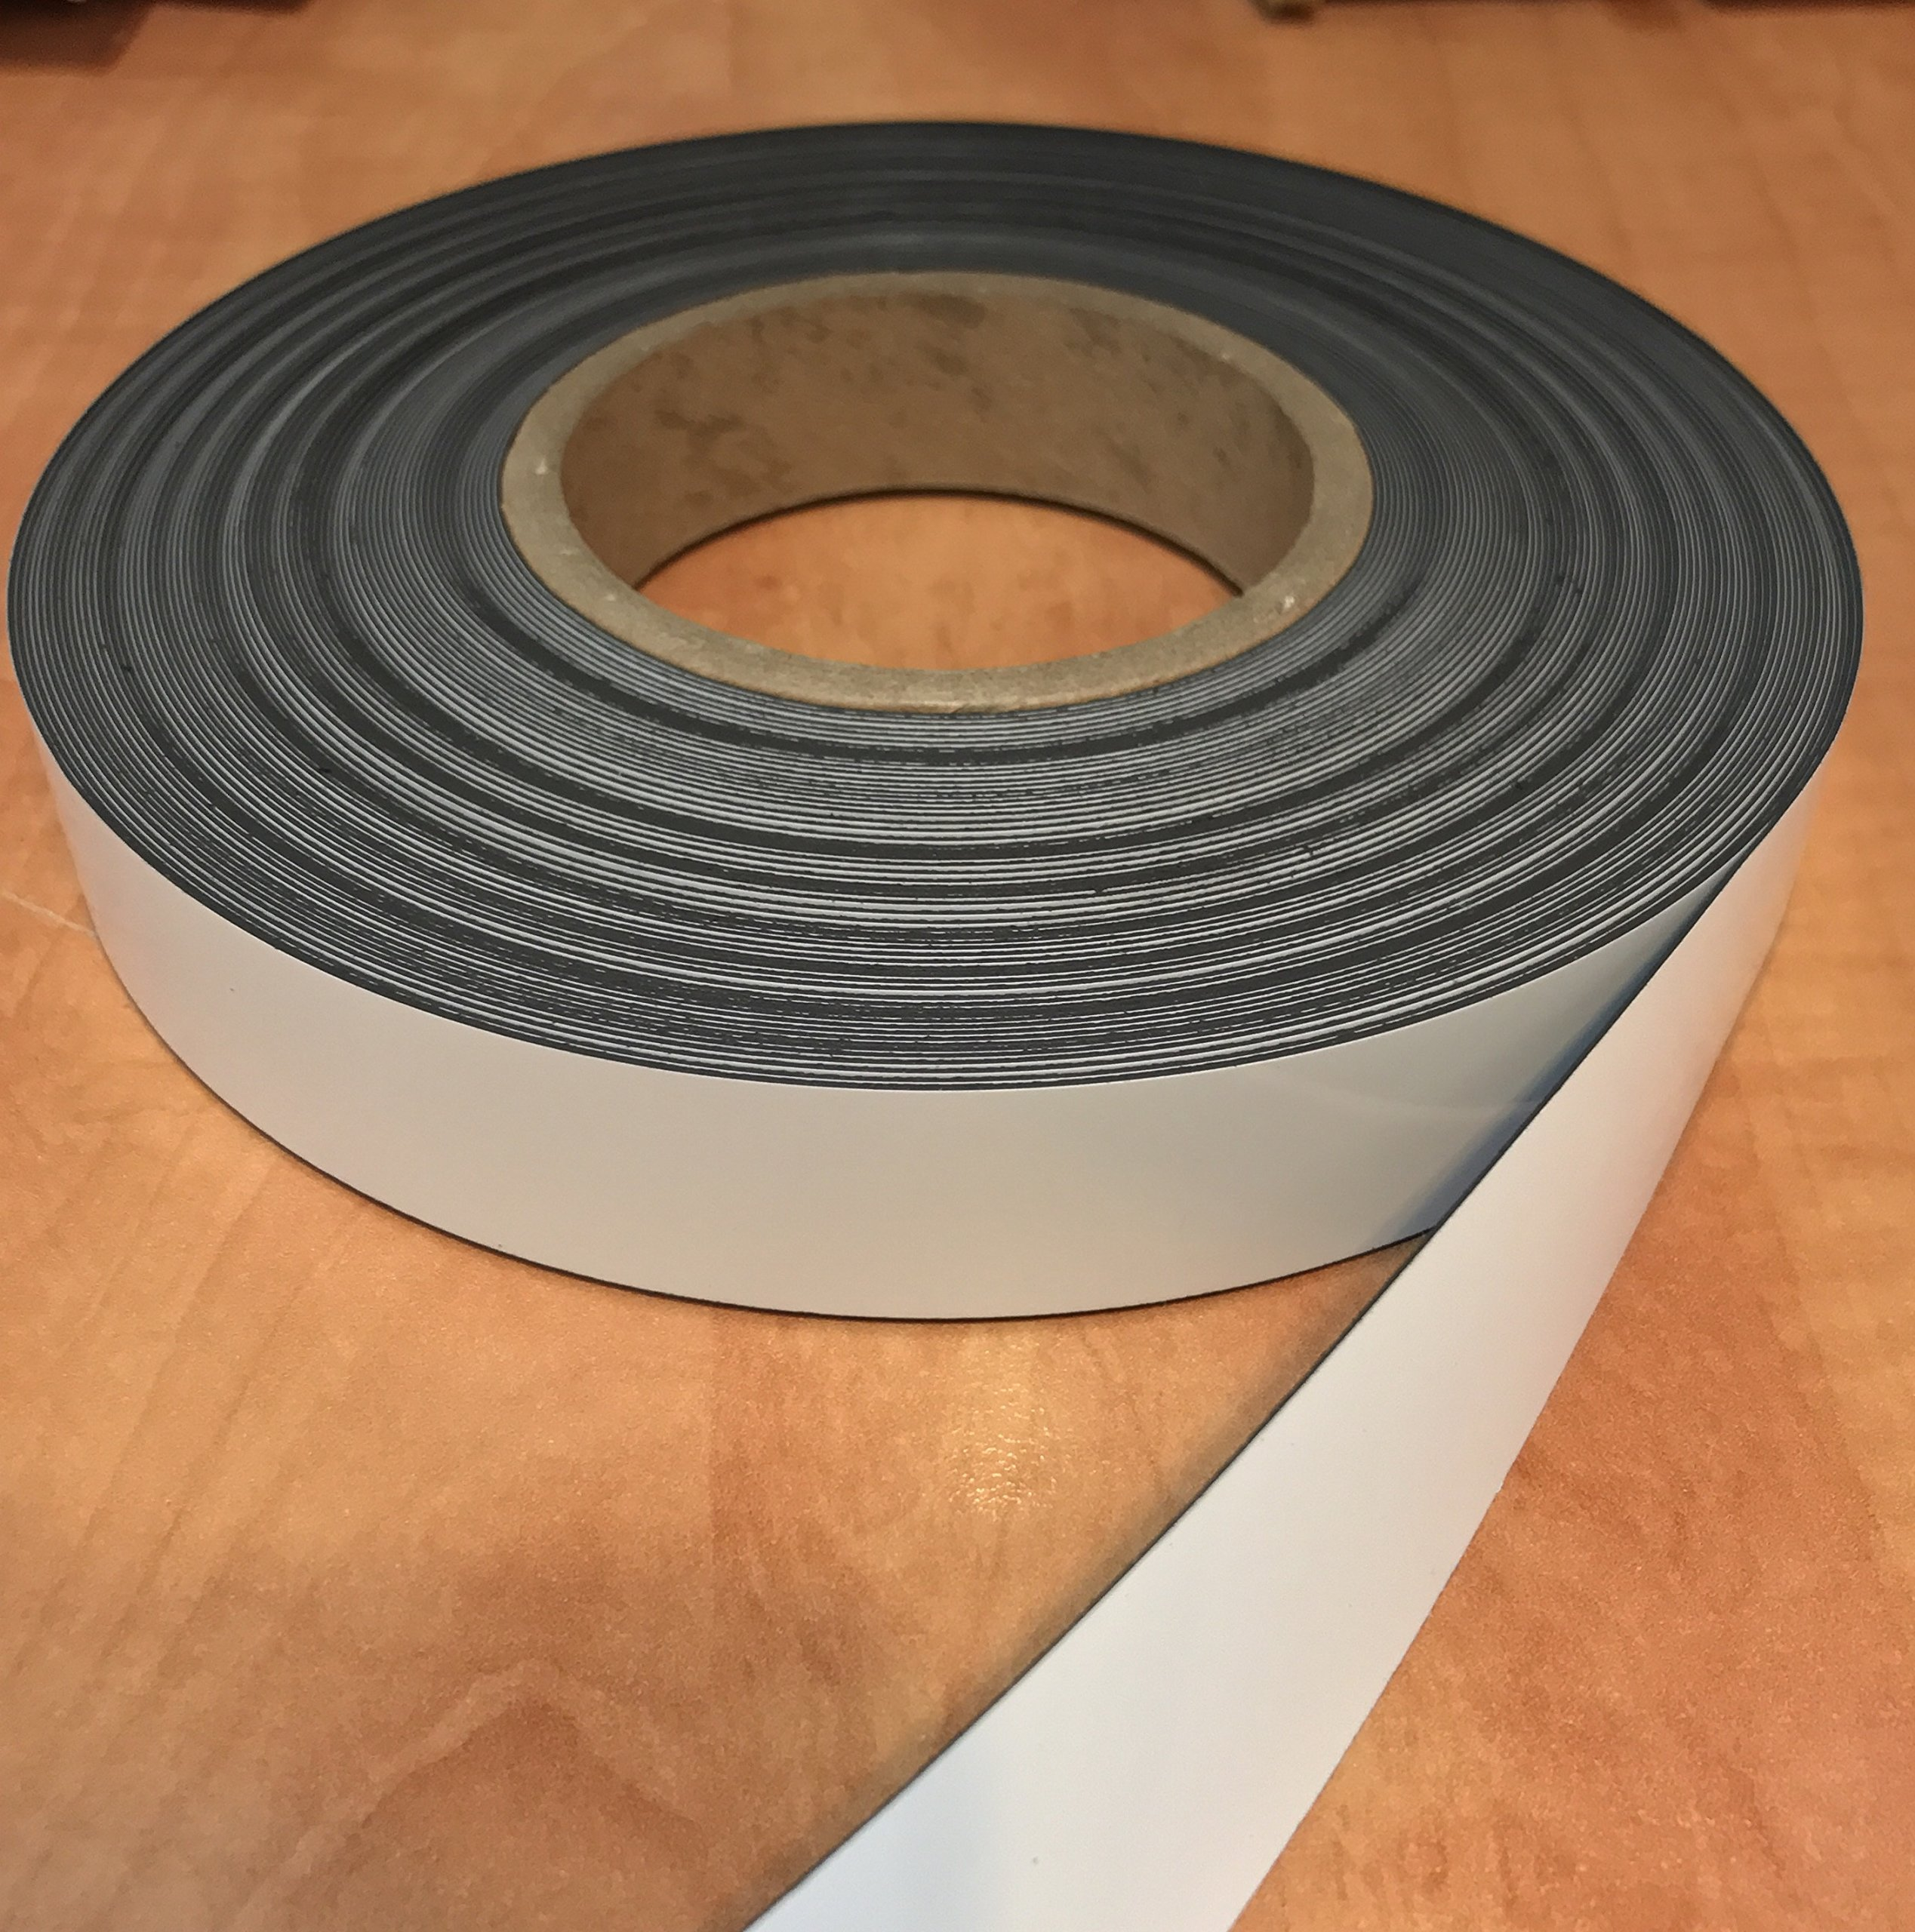 Dry Erase Magnetic Strip Roll 1'' x 100' Write on / Wipe off Magnet by Magnet Valley